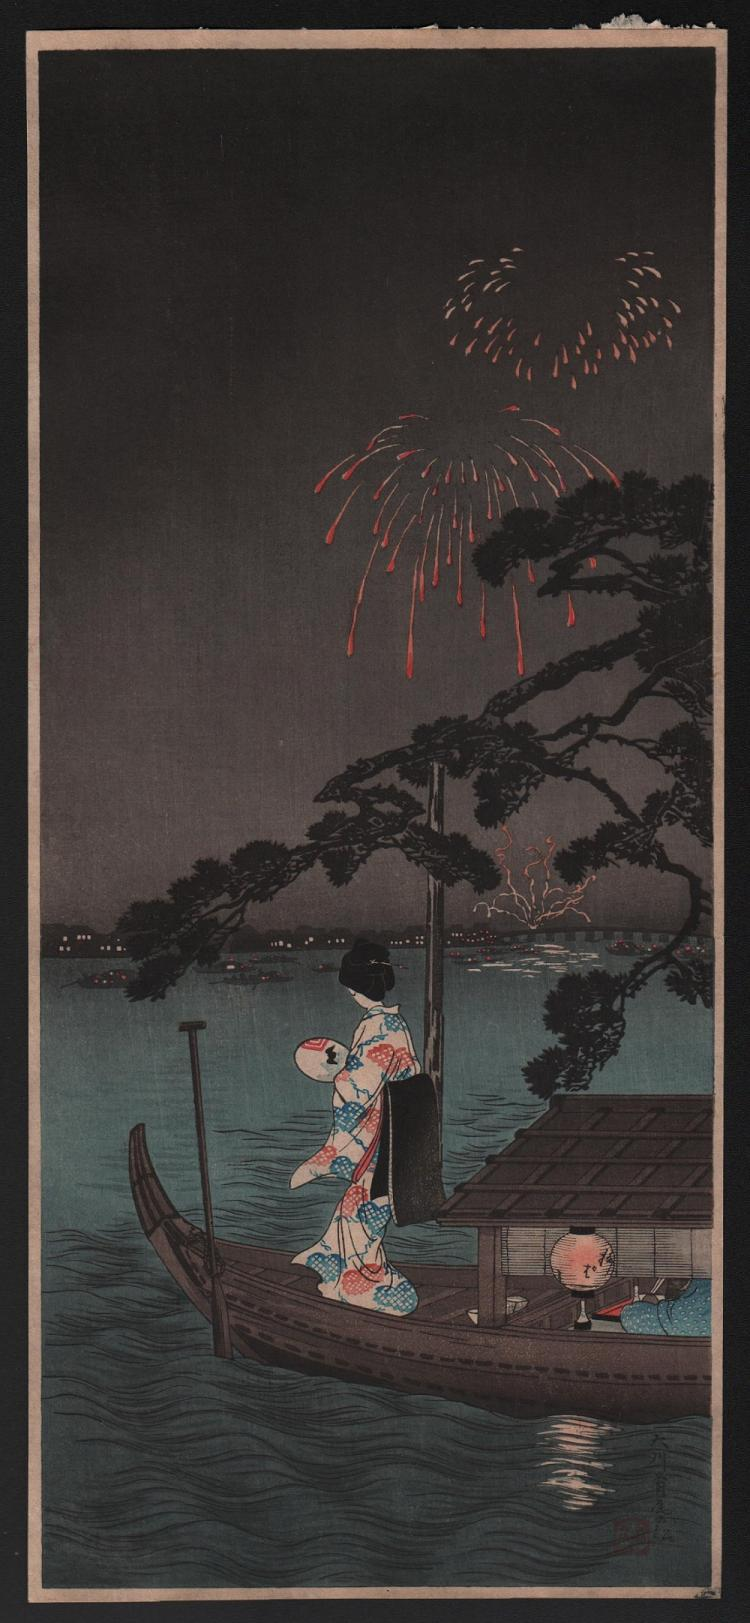 Original Japanese woodblock print by Takahashi Shotei